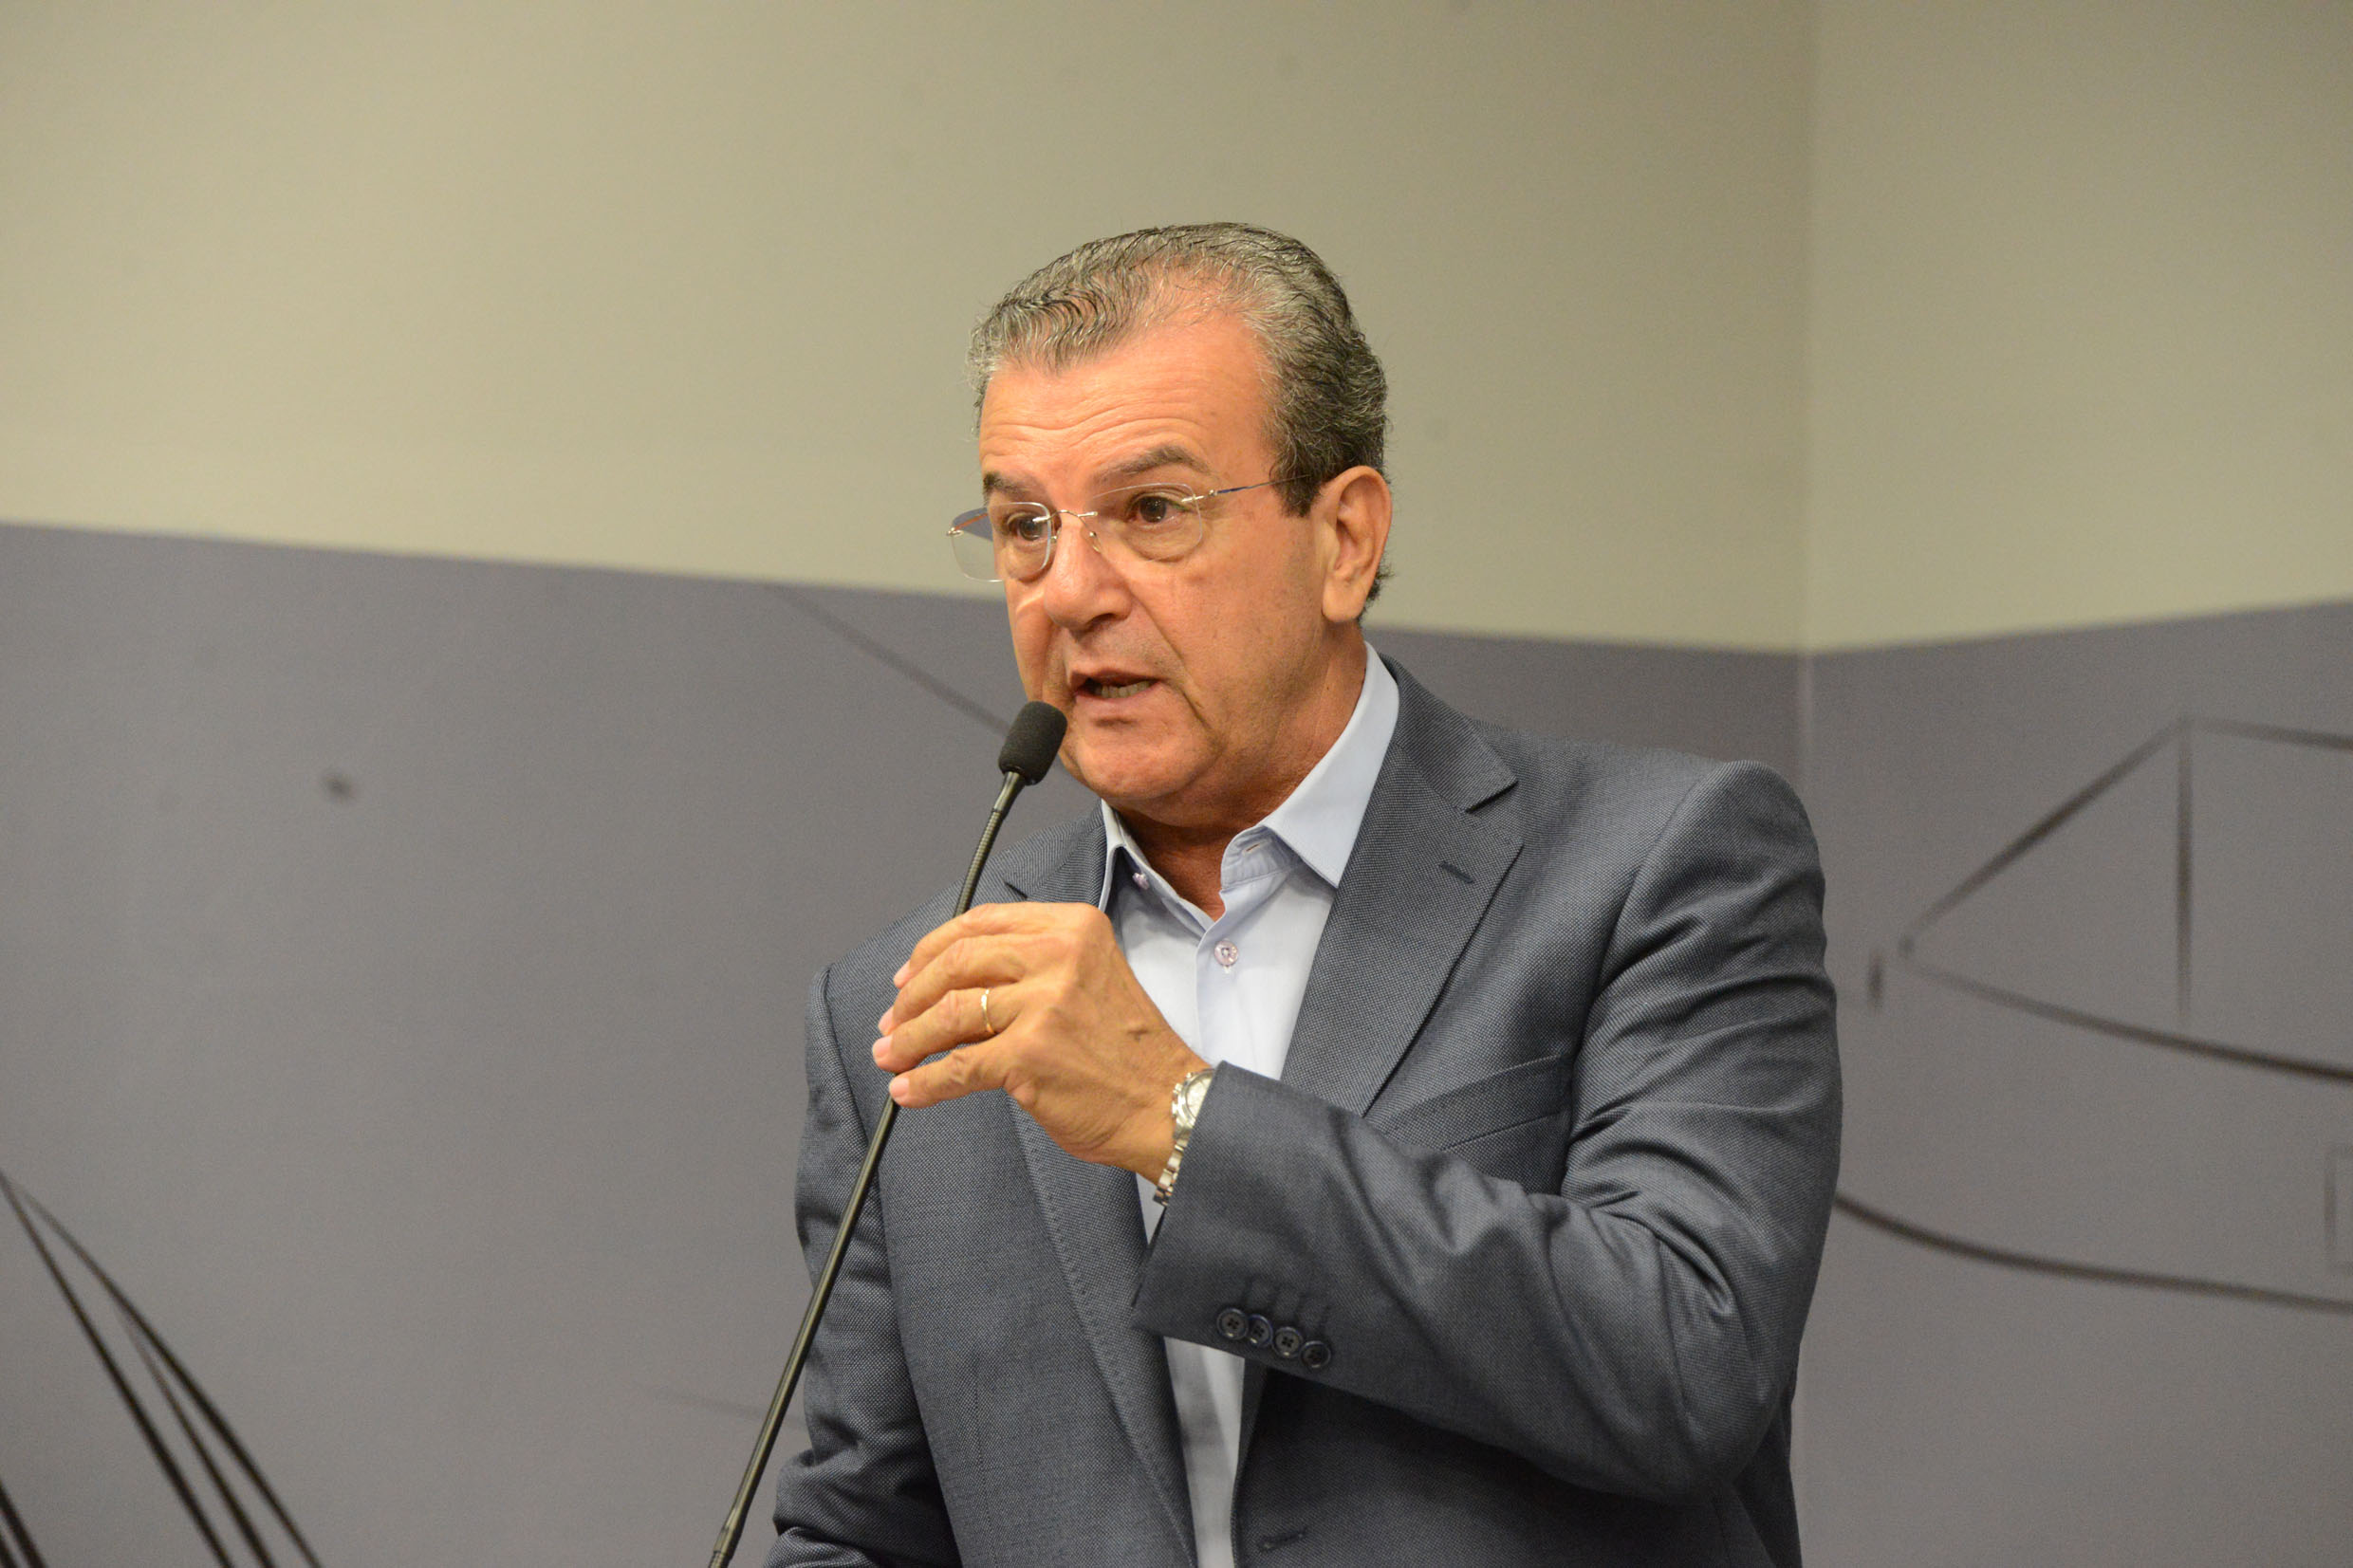 Dilador Borges<a style='float:right' href='https://www3.al.sp.gov.br/repositorio/noticia/N-10-2017/fg210246.jpg' target=_blank><img src='/_img/material-file-download-white.png' width='14px' alt='Clique para baixar a imagem'></a>